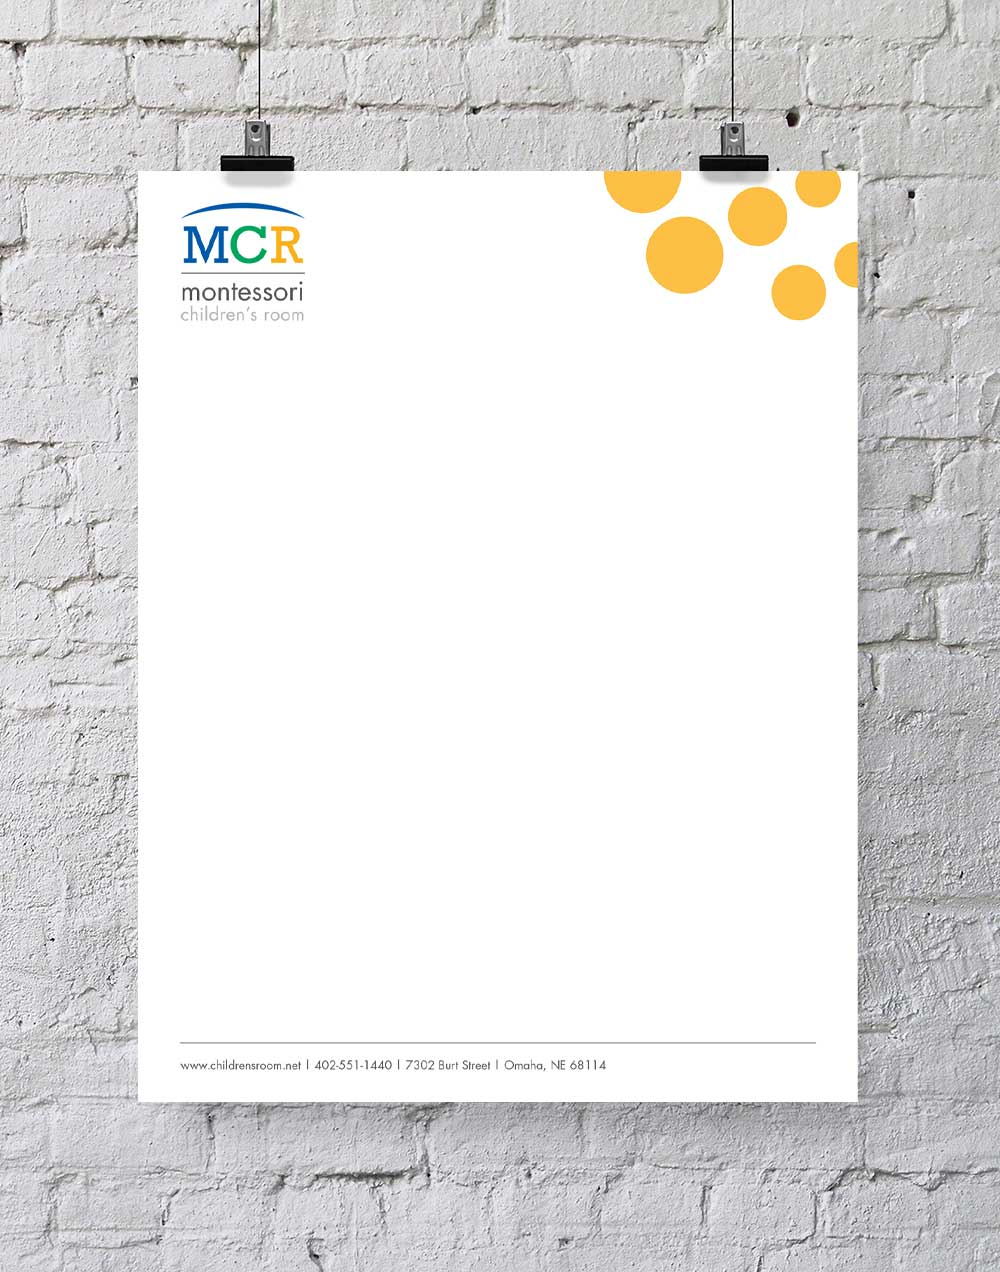 Montessori Children's Room letterhead